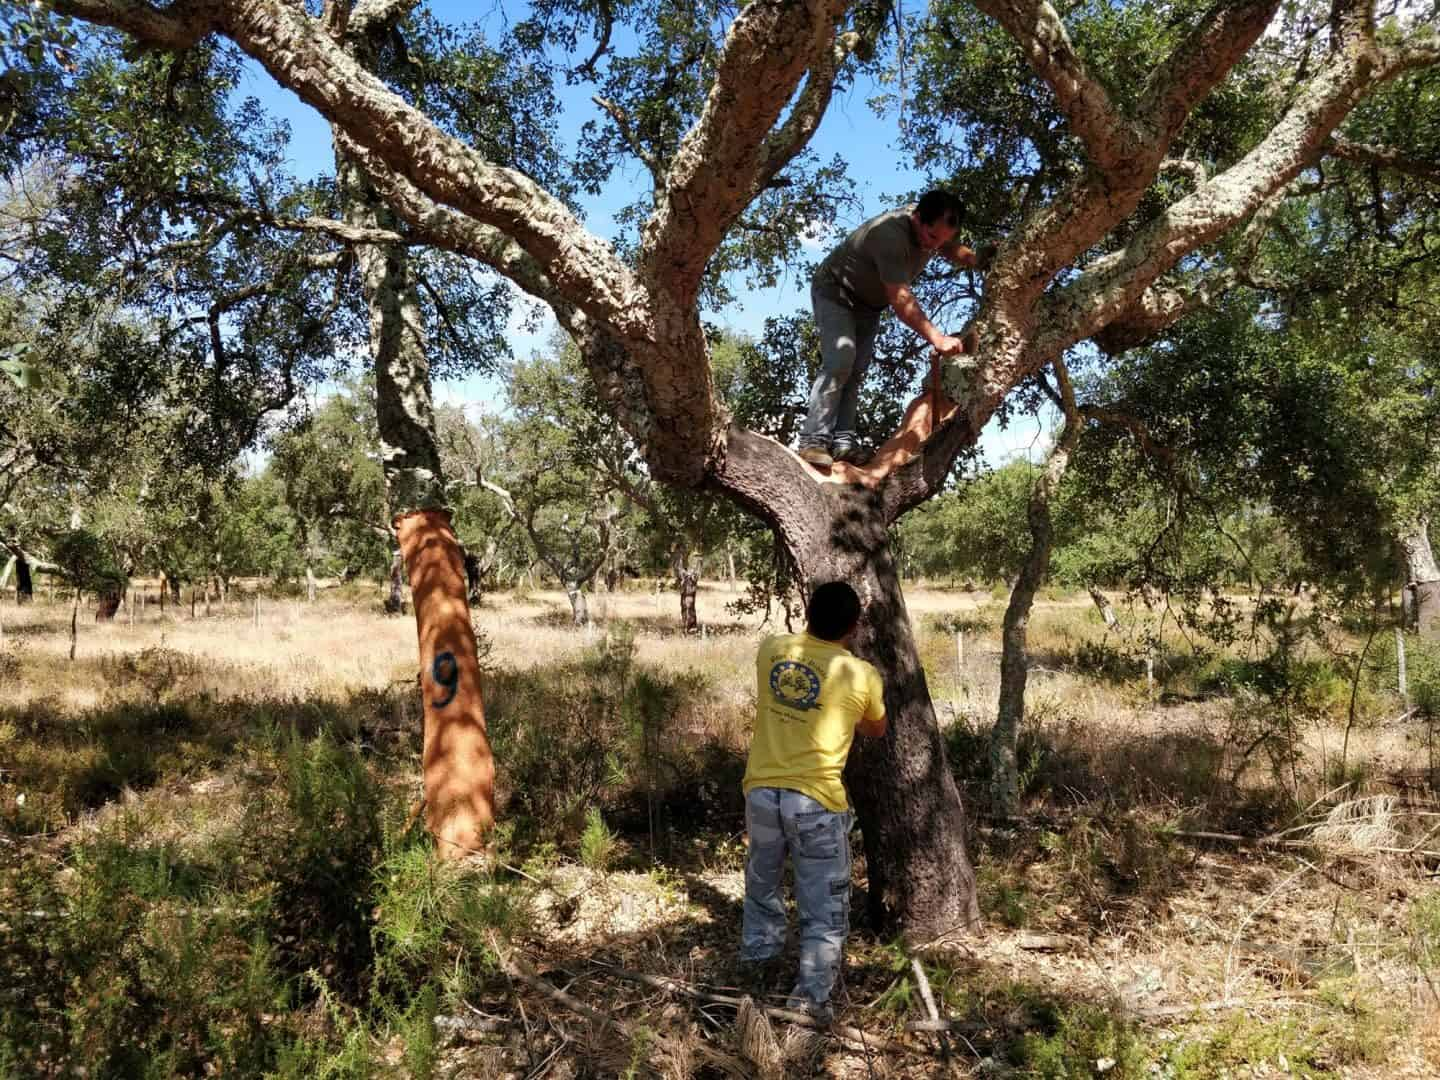 Cork production starts with the cork that is harvested in the cork oak forest of Portugal